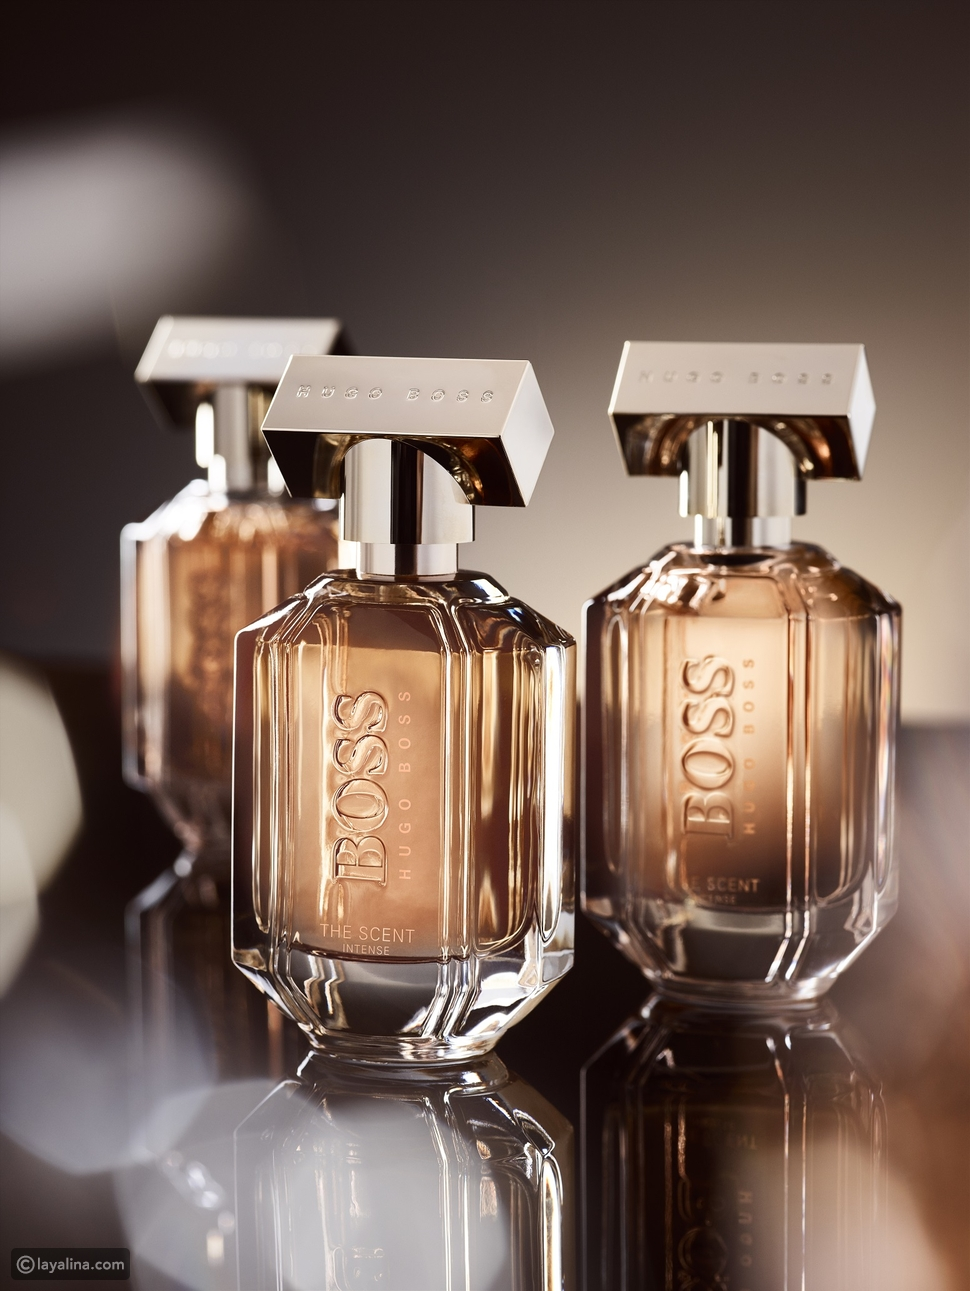 The Scent Intense